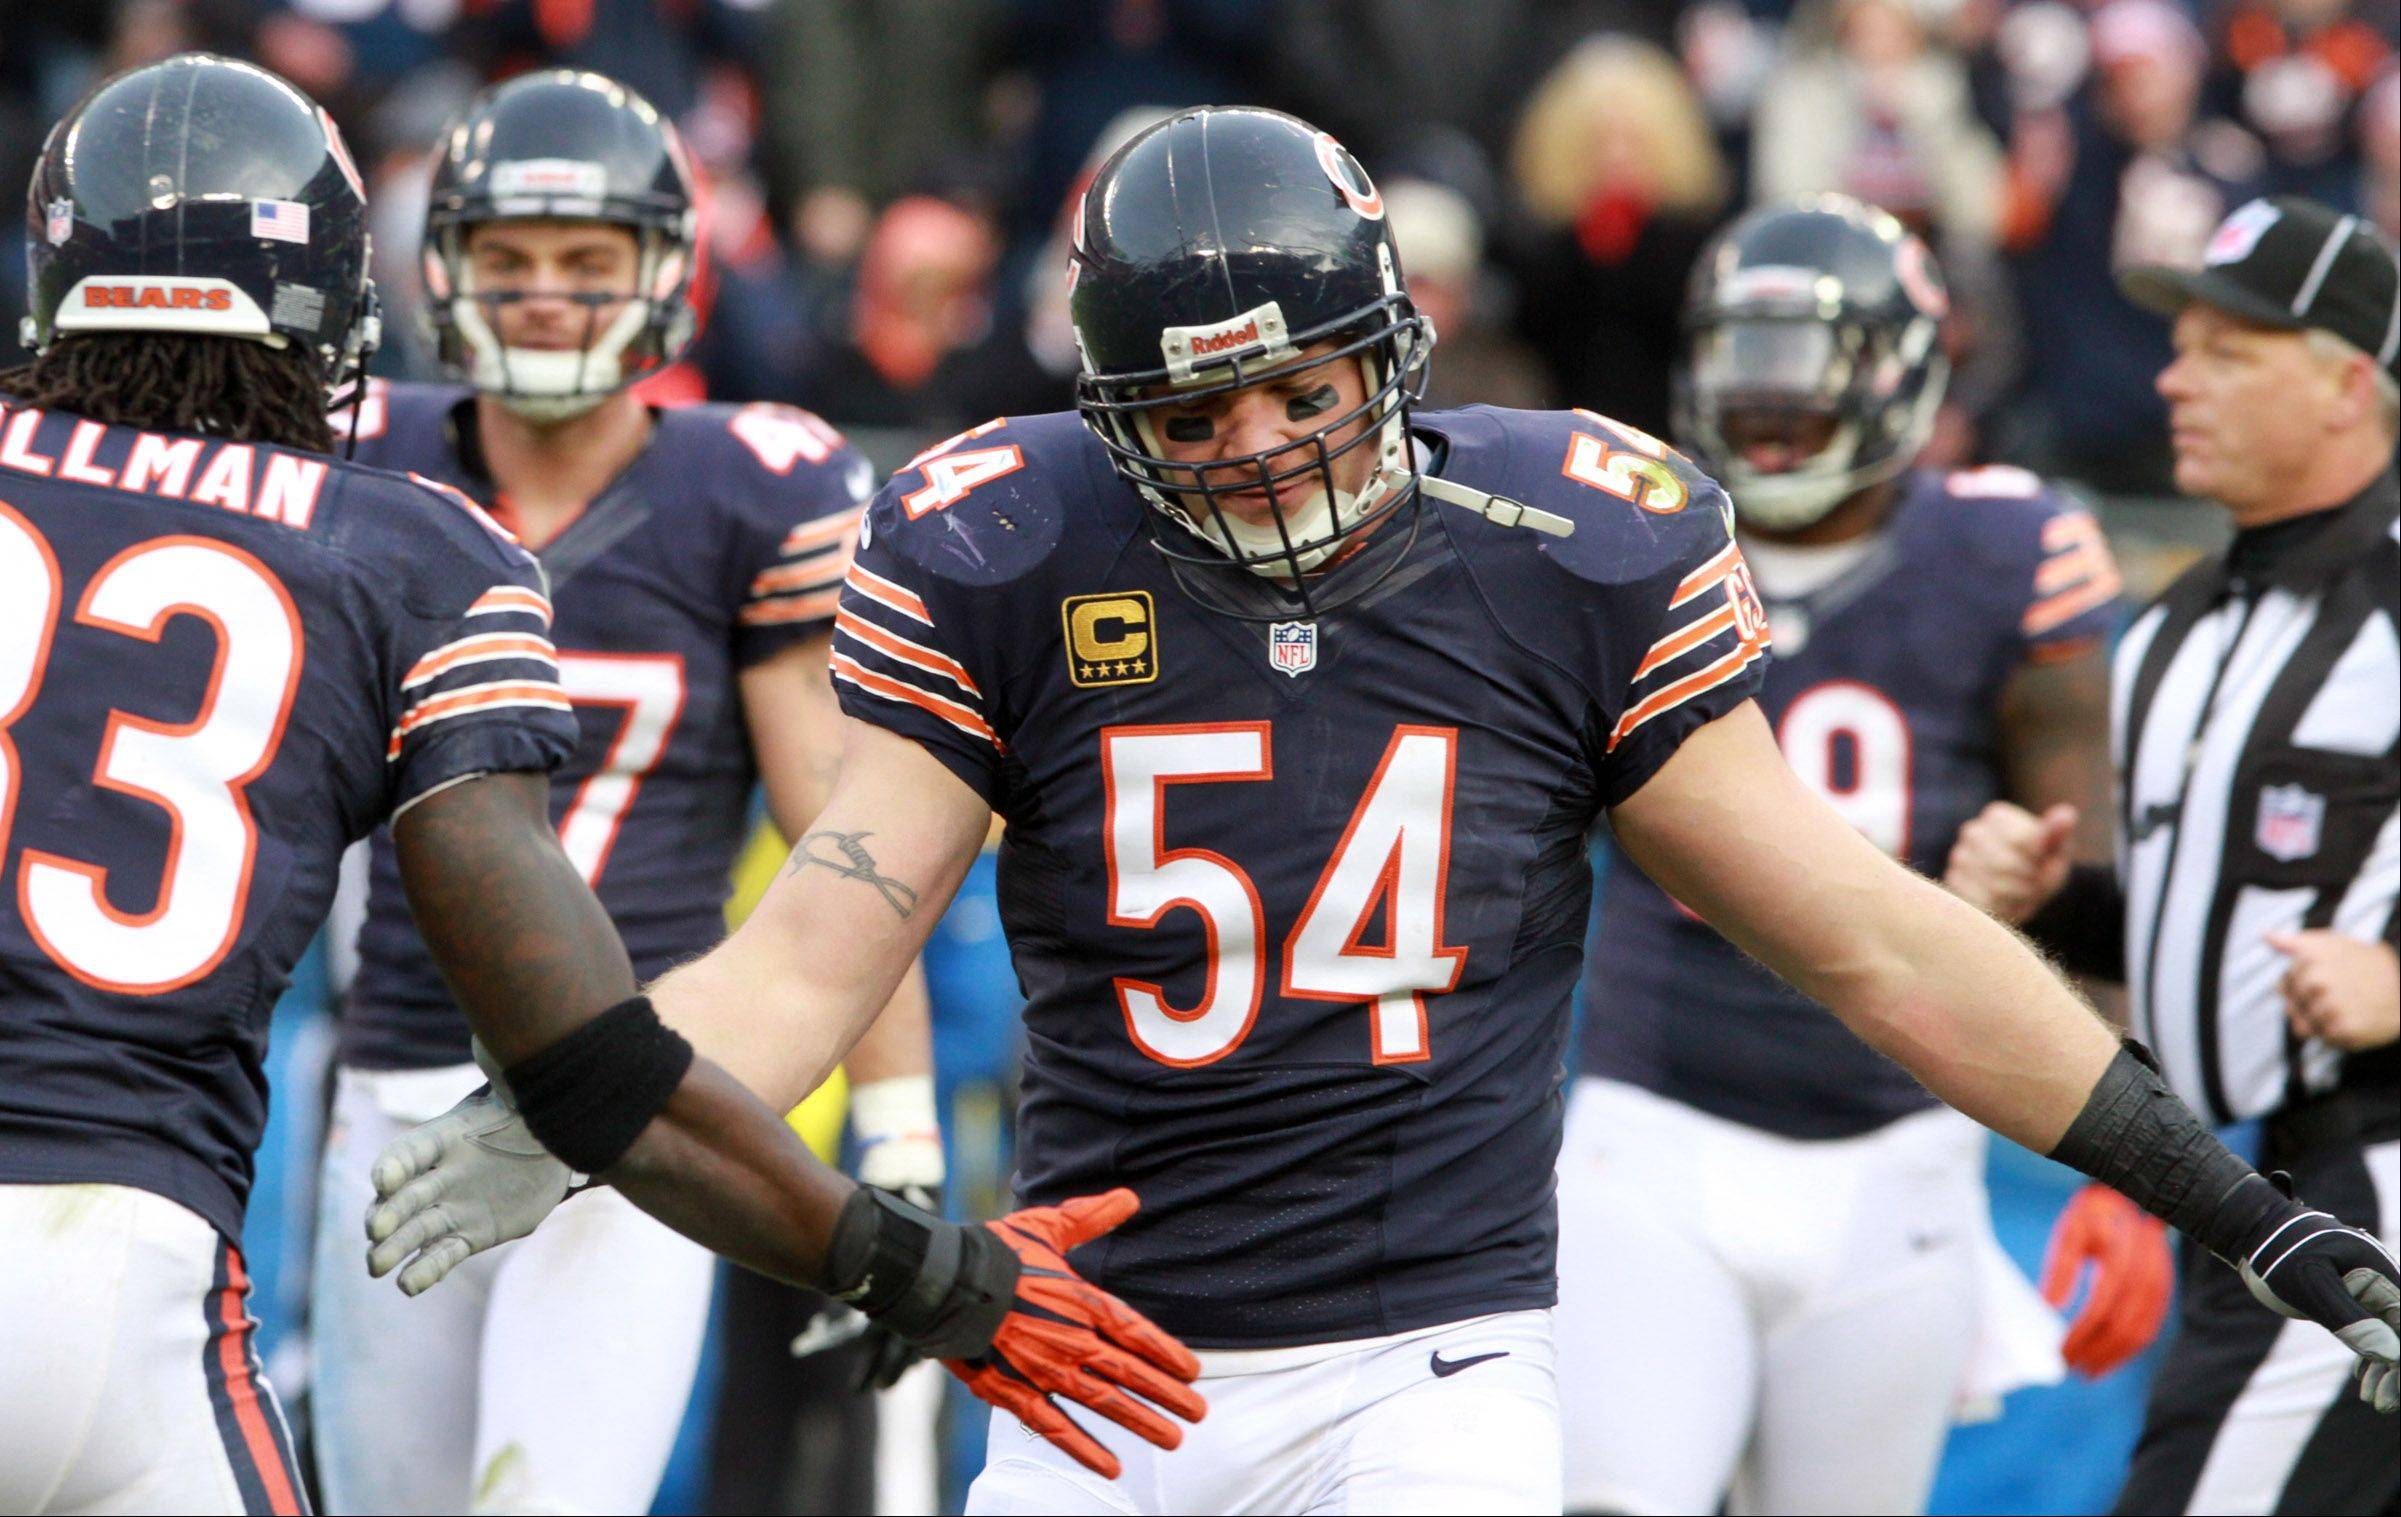 After 13 seasons, middle linebacker Brian Urlacher has played his last game in the NFL and is retiring.